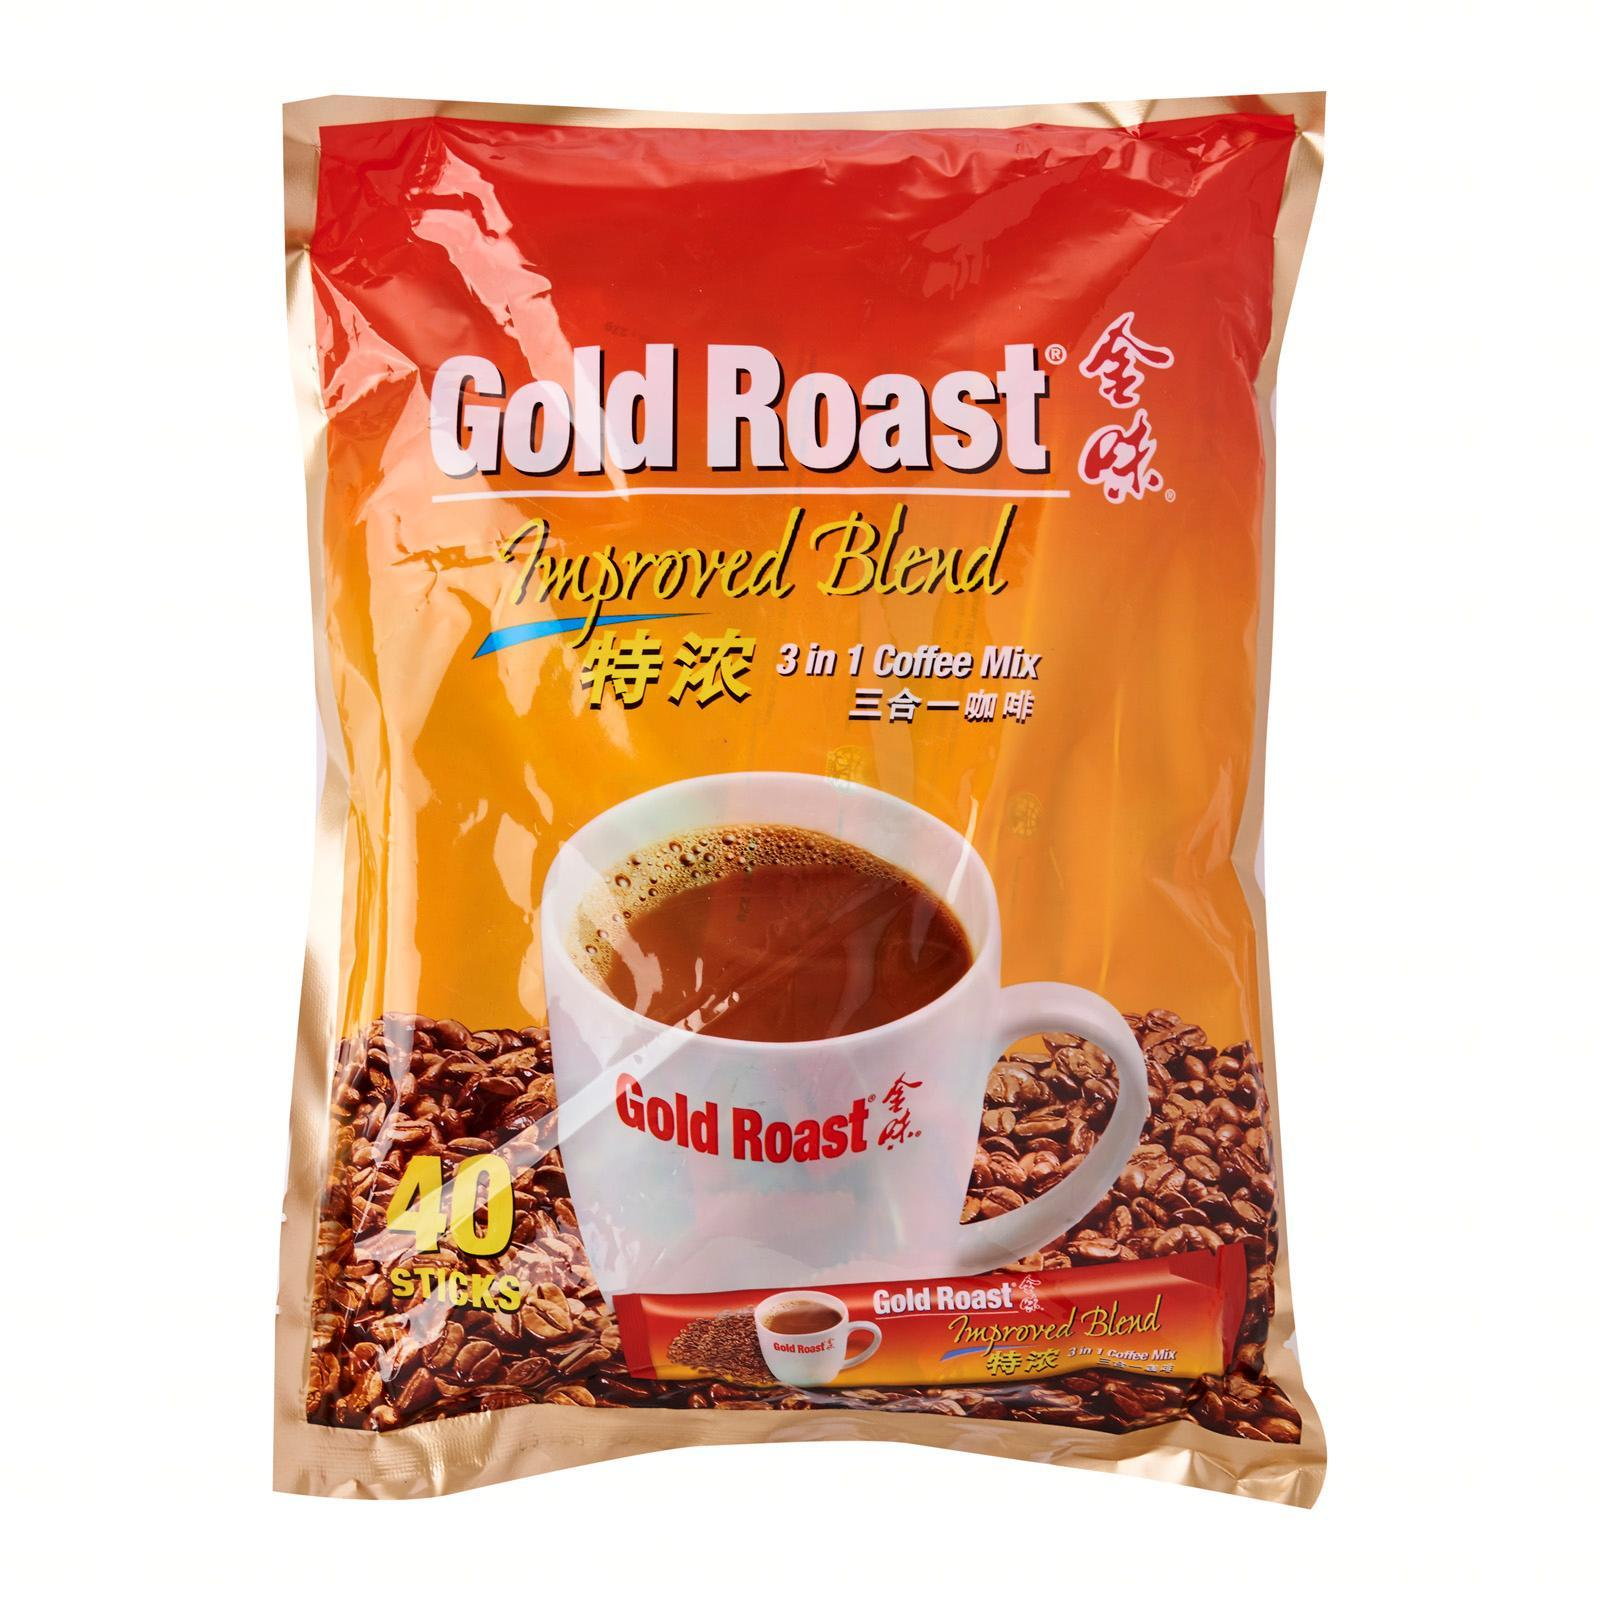 Gold Roast Improved Blend 3In1 Instant Coffeemix